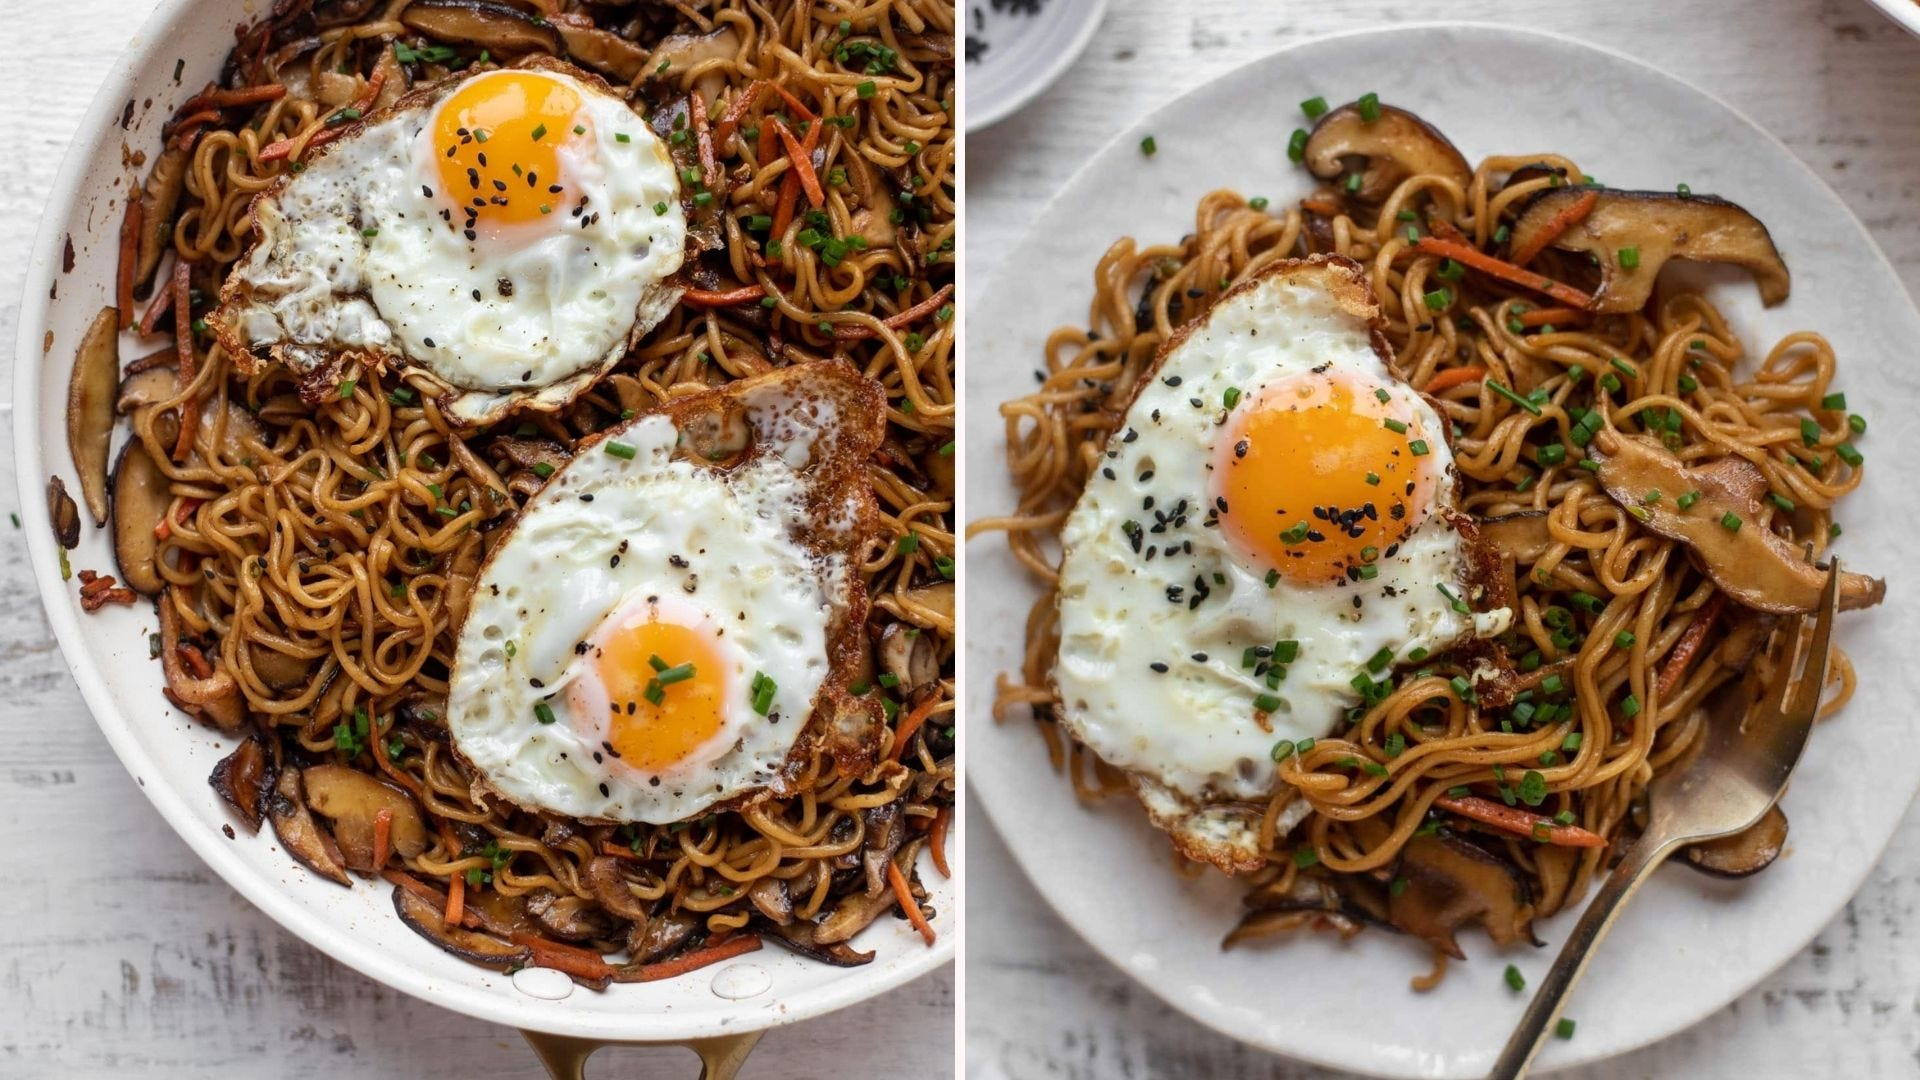 Two plates of ramen topped with fried eggs. The left image is of the entire meal in a skillet and the right image is a plated version topped with chopped chives.